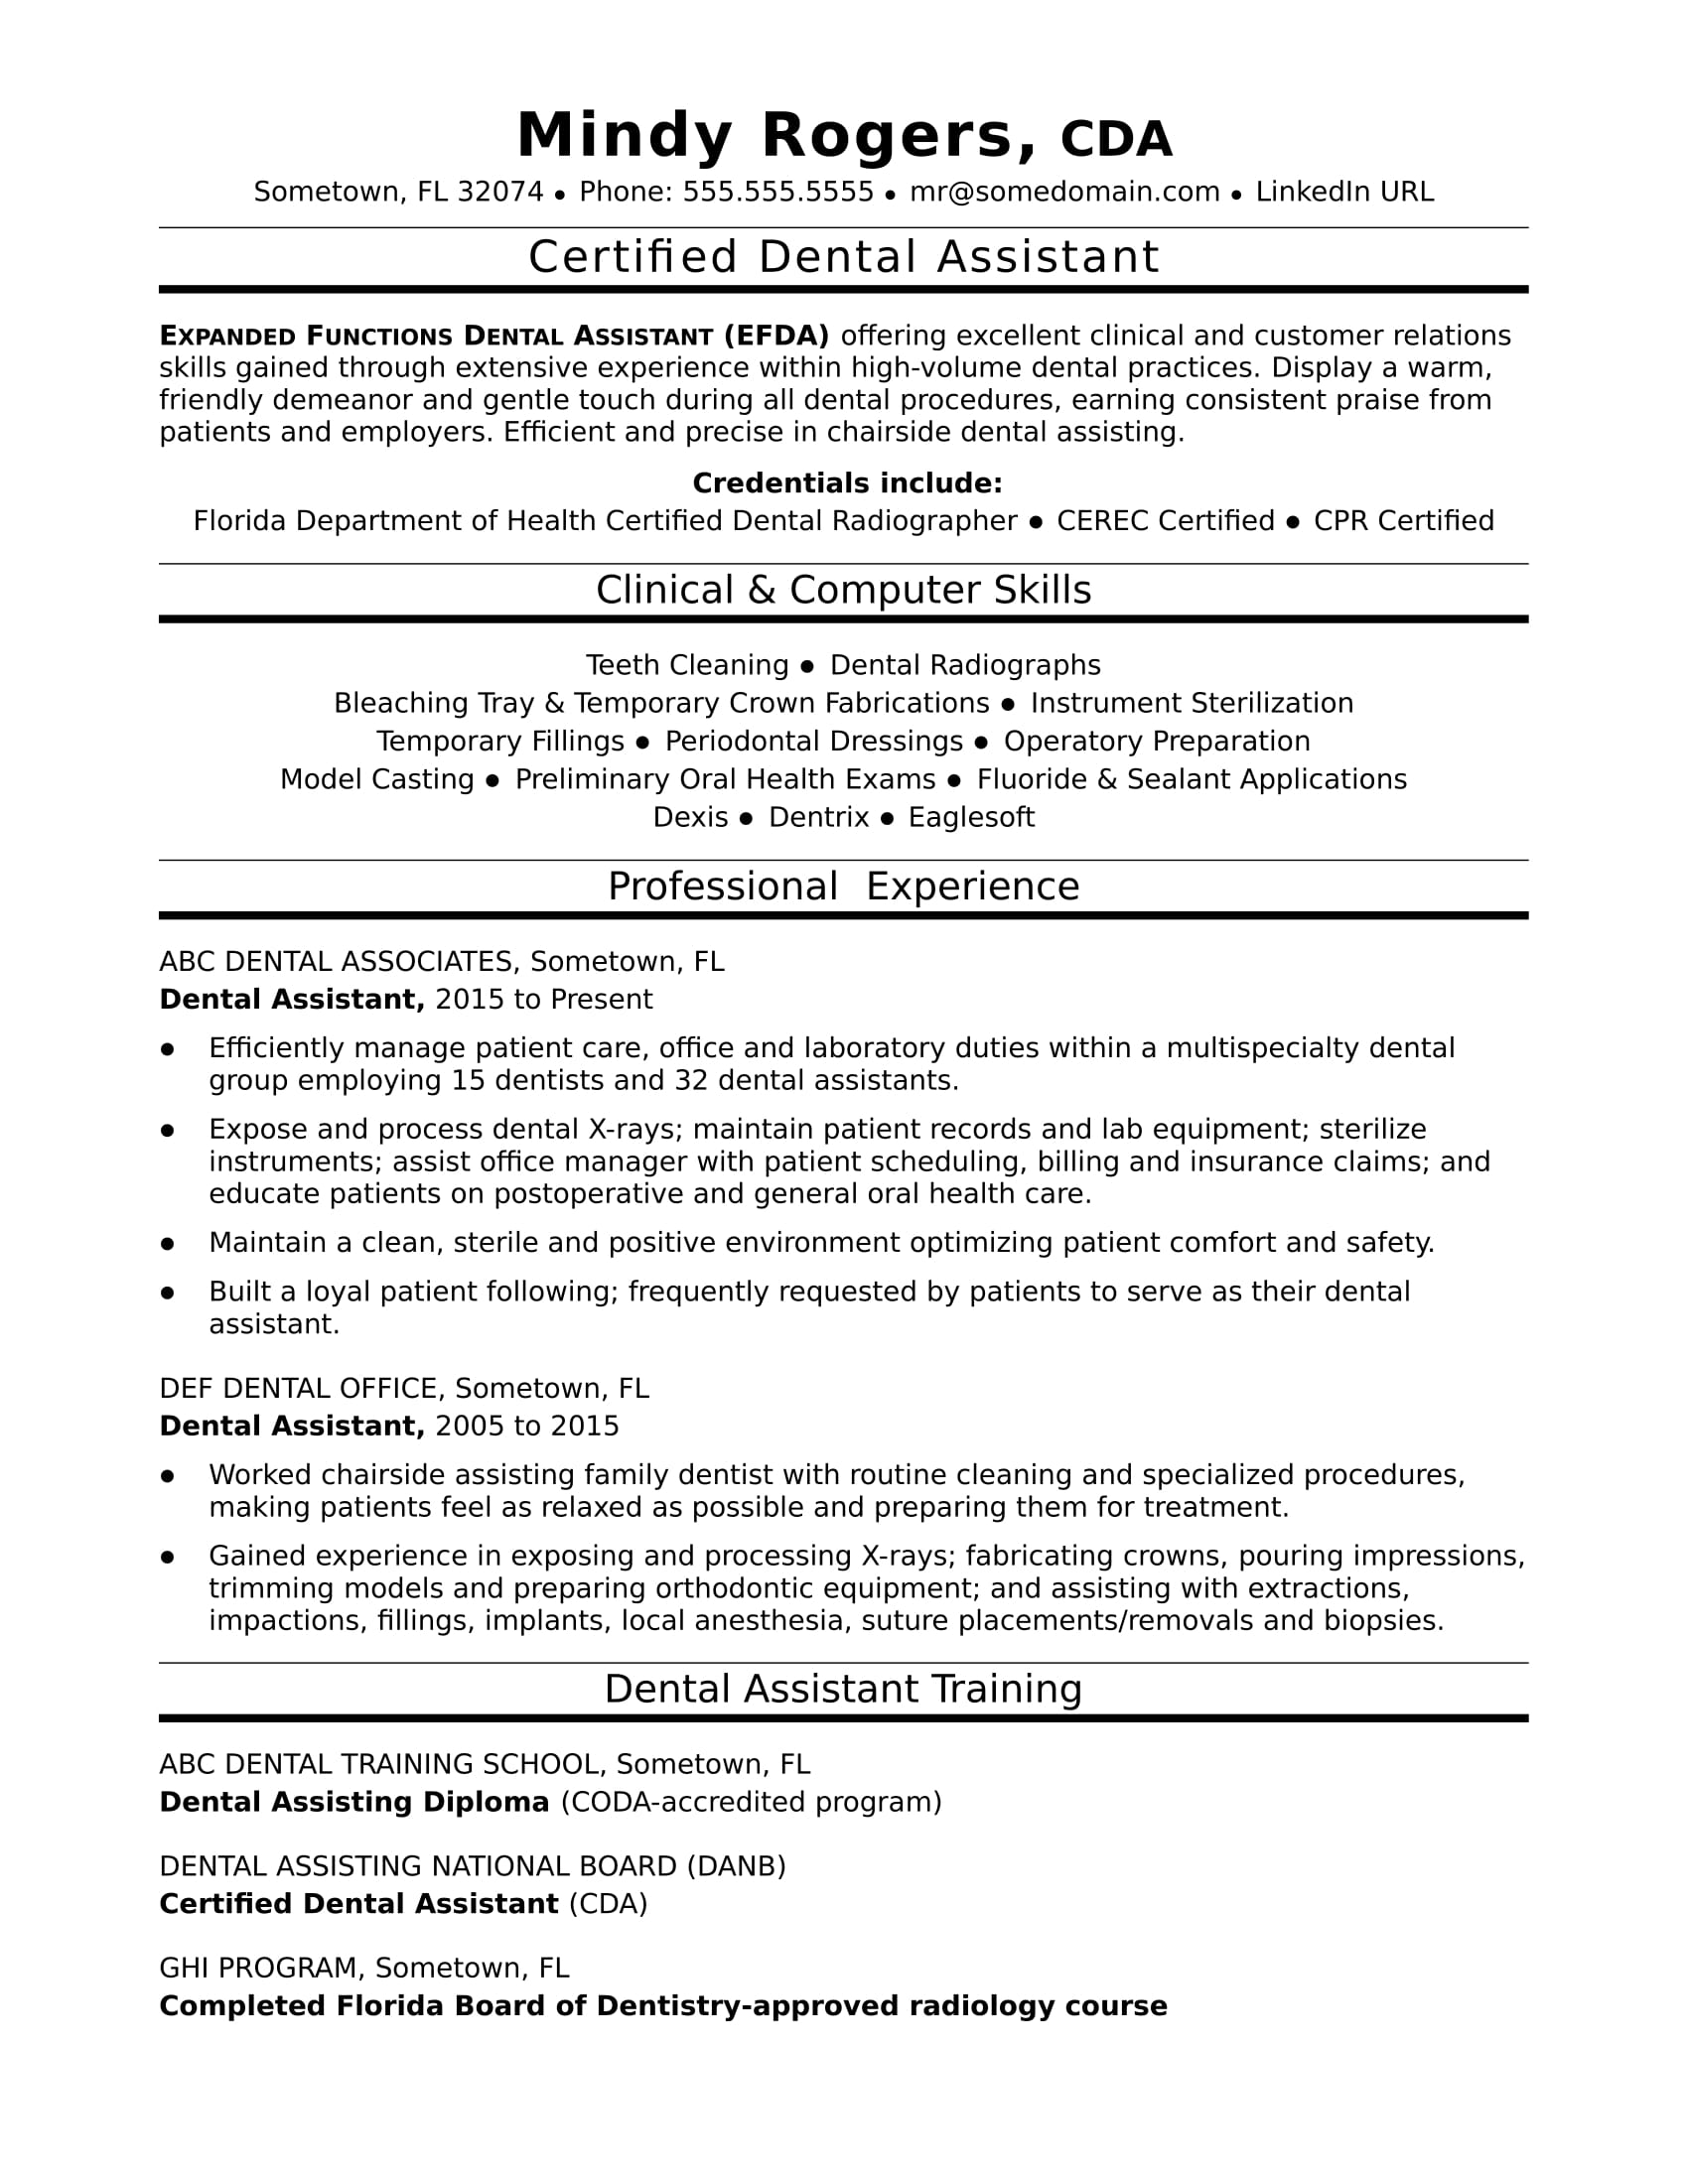 dental assistant resume sample - Dental Assistant Resume Skills